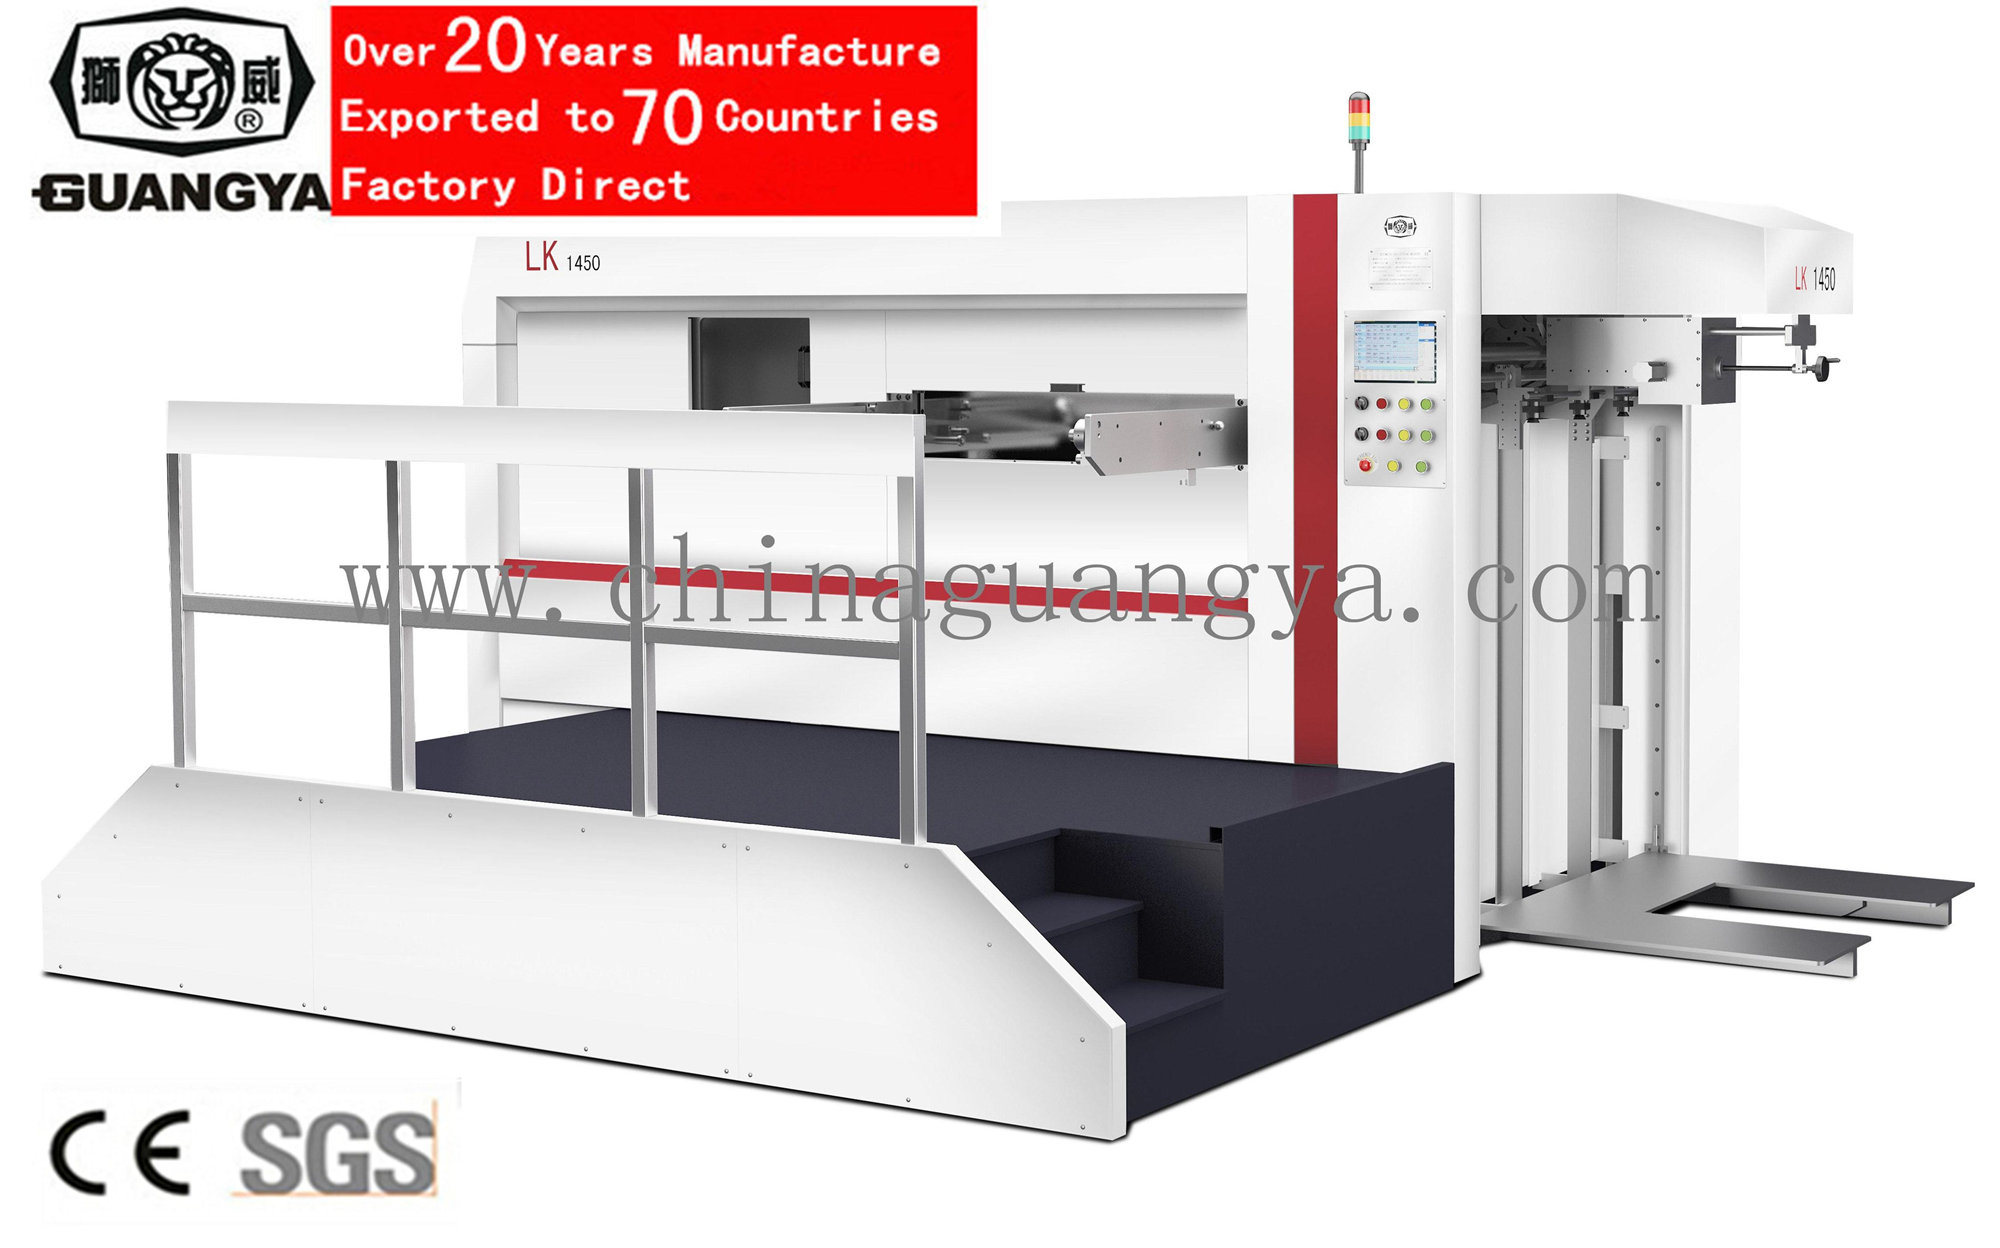 Manual-Auto Integrated Automatic Die Cutting Machine (1450*1060mm, LK1450)